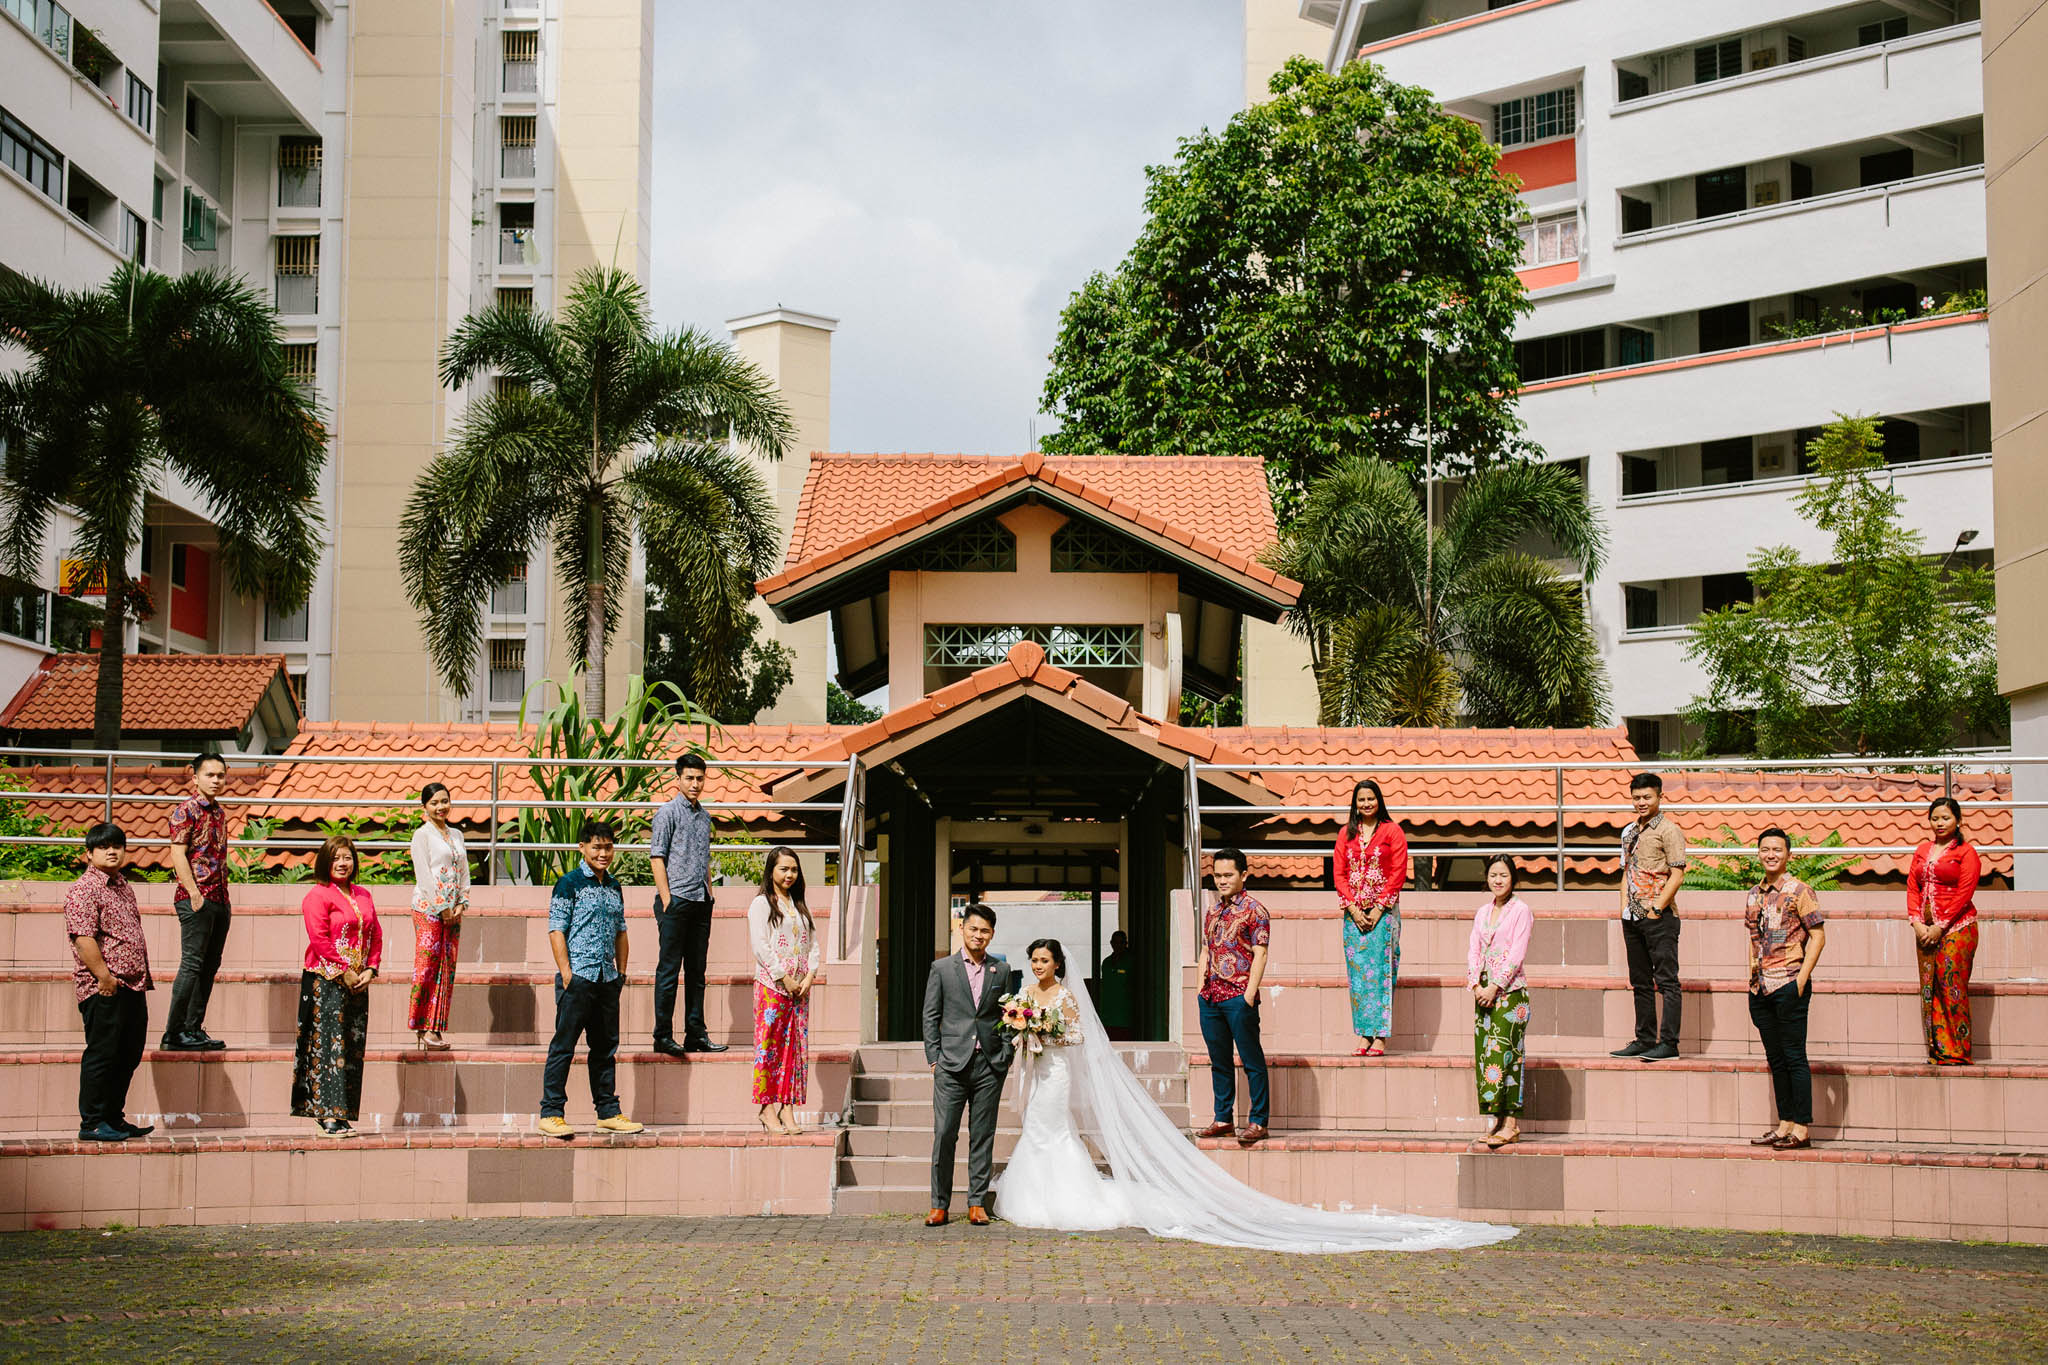 singapore-wedding-photographer-wedding-hafiana-teck-kuan-026.jpg